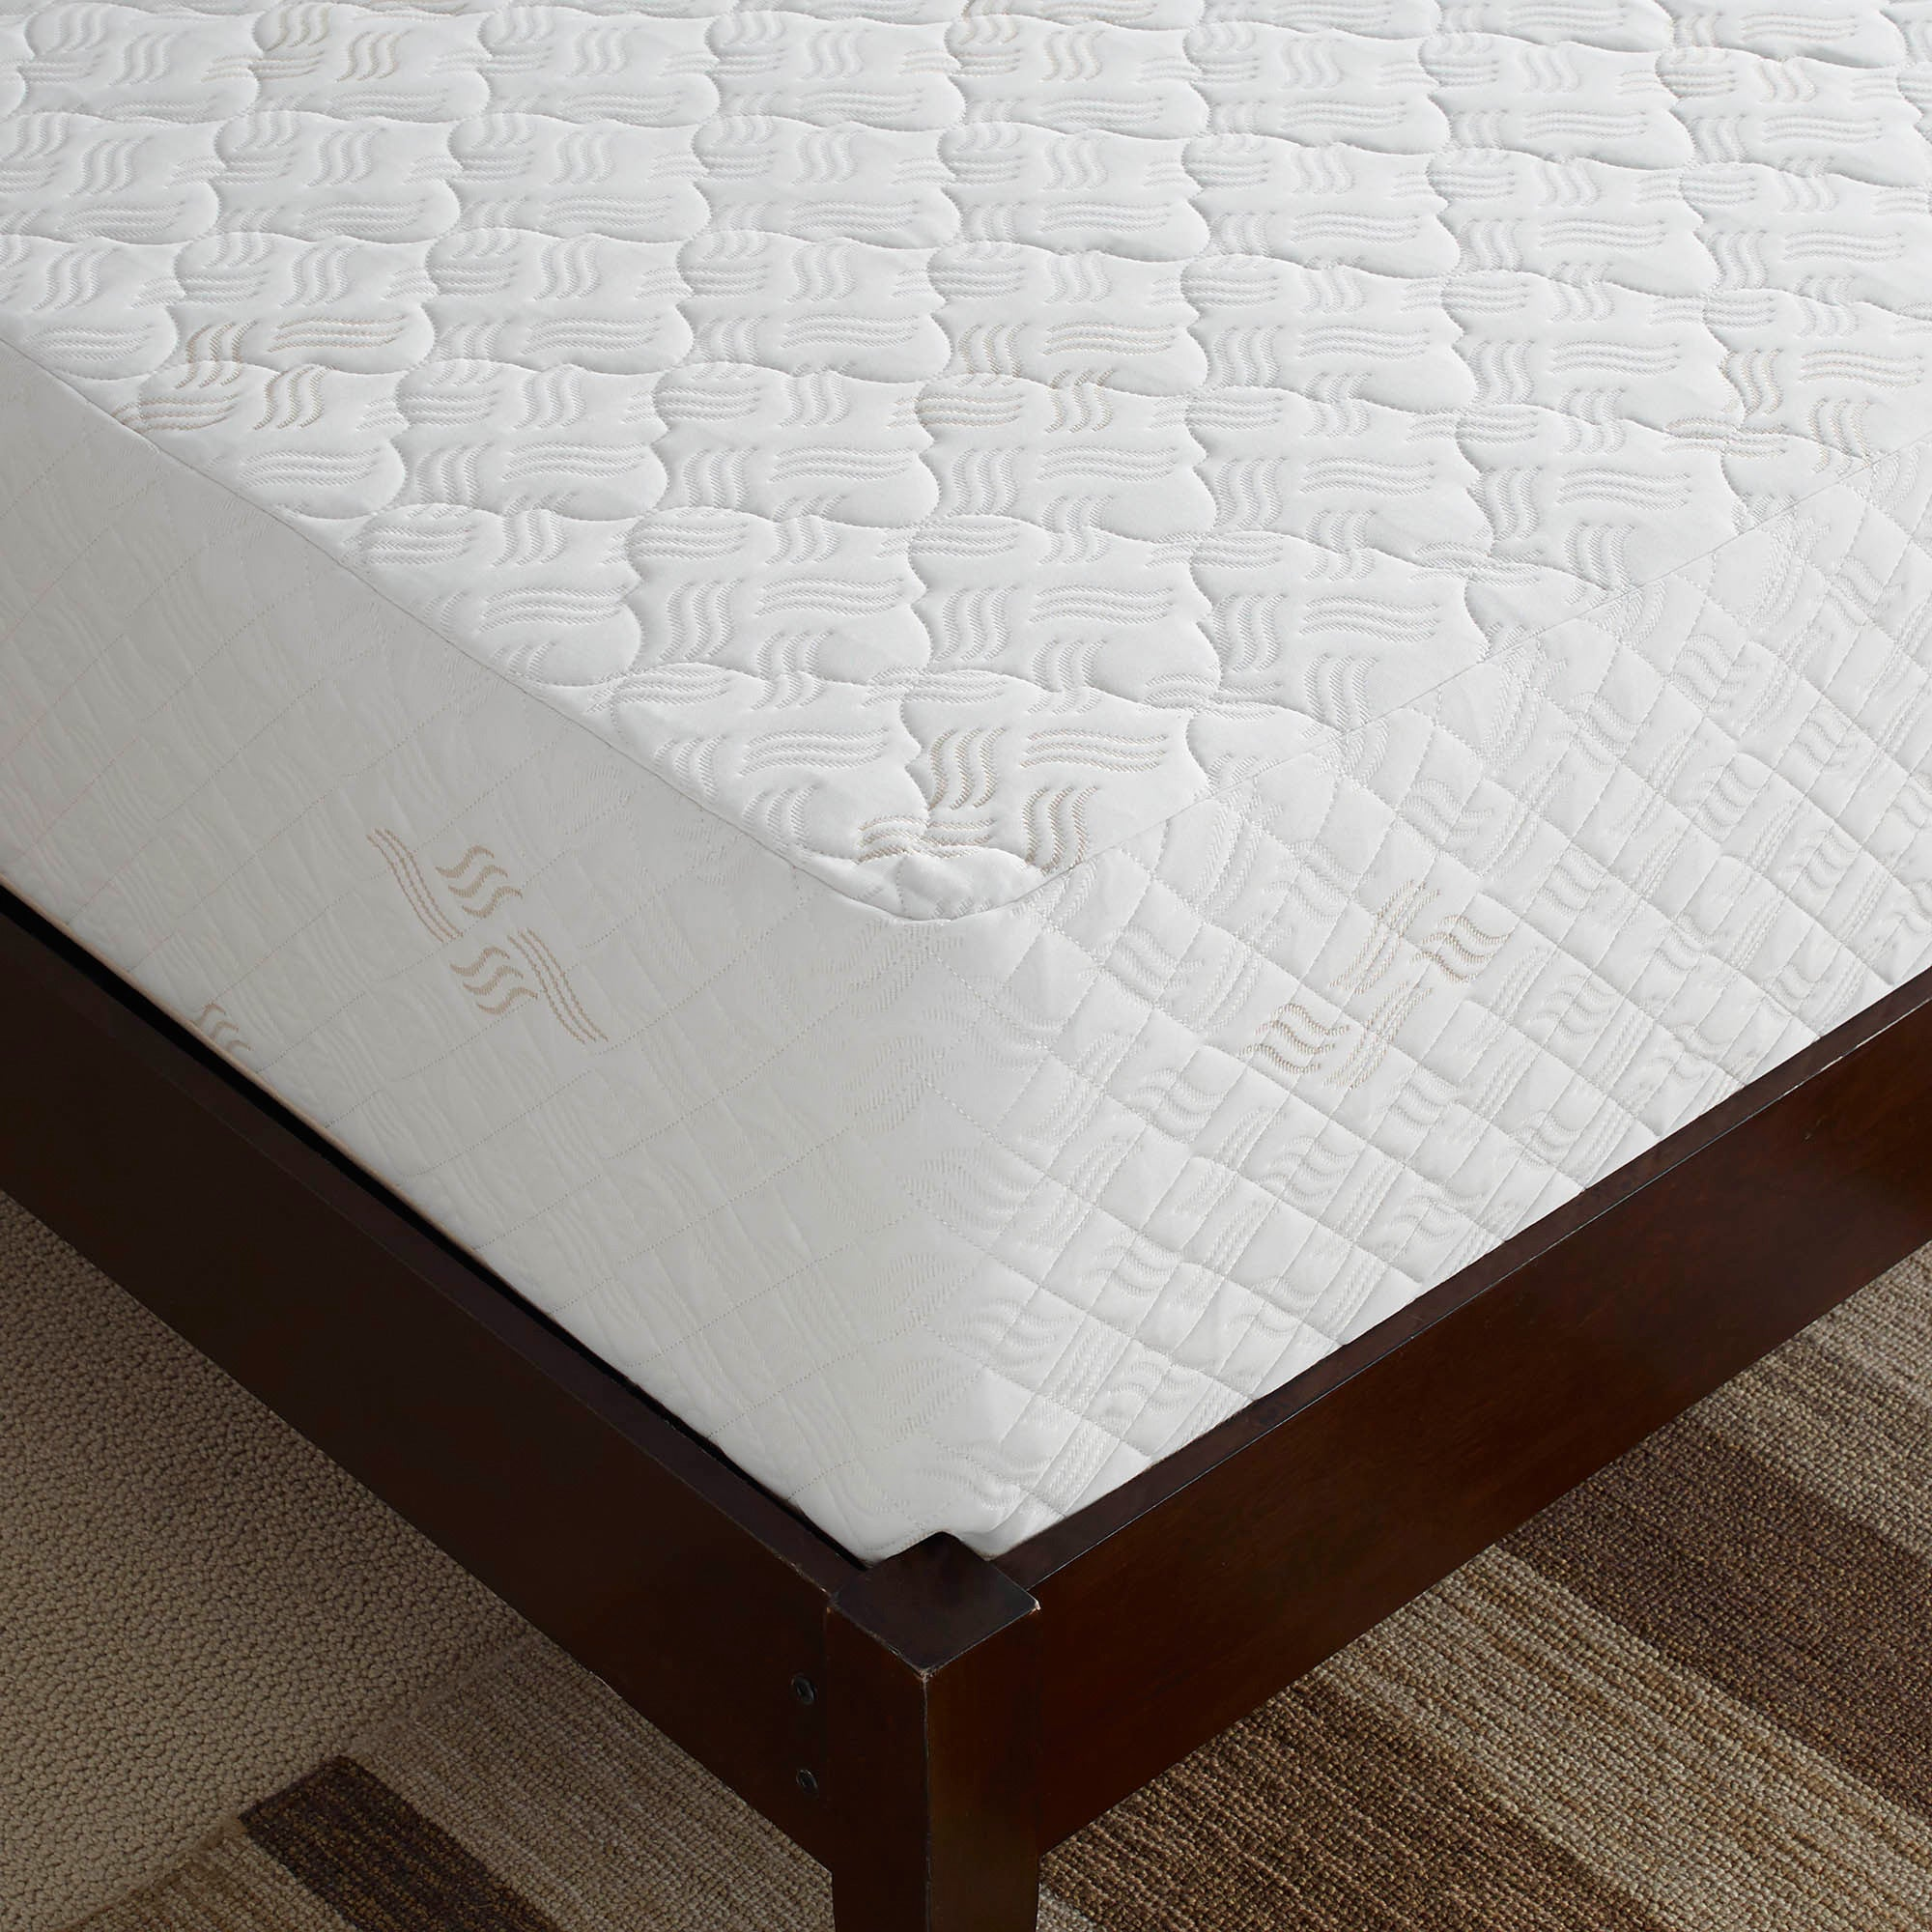 Touch of fort Deluxe 12 inch Full size Memory Foam Mattress